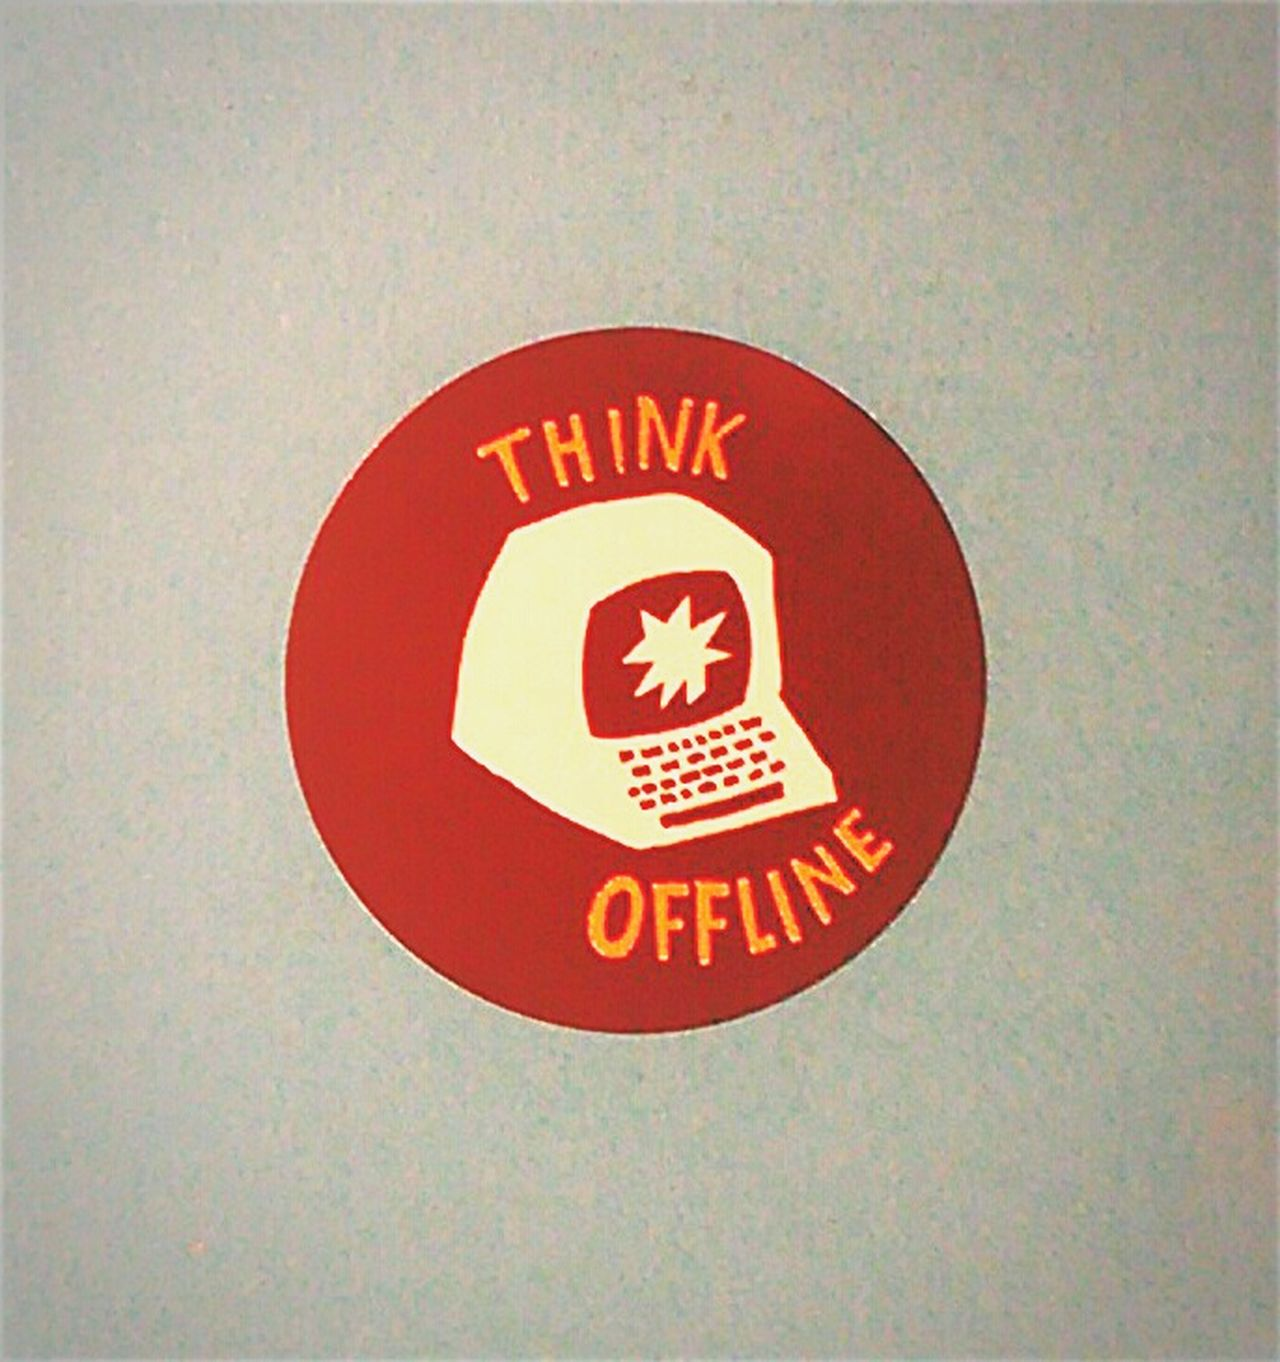 Sticker Think Offline Stickers Signs SignSignEverywhereASign Sticker Wall Sign Signstalkers Signporn Offline Sticker_Styles Stickerseverywhere Stickers Stickers Stickers Stickers And Stickers Stickerporn Sign, Sign, Everywhere A Sign Signs Signs Everywhere Signs Signs, Signs, & More Signs Signage SignsSignsAndMoreSigns Signgeeks Signboards Signs_collection Signboard SIGN.